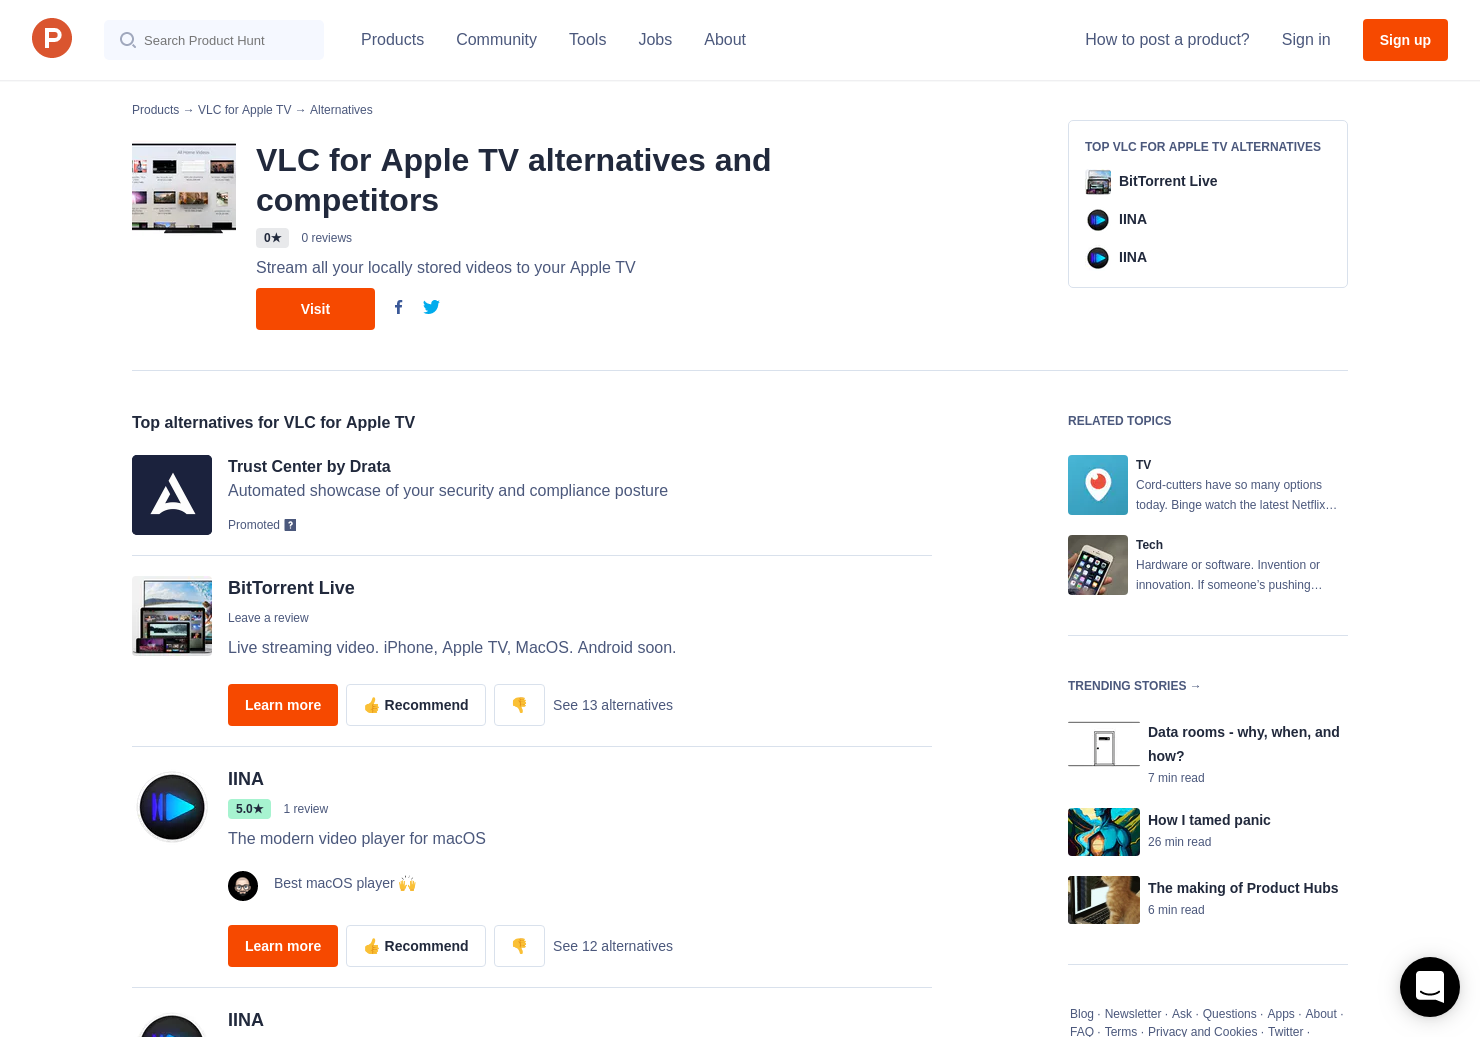 9 Alternatives To Vlc For Apple Tv For Apple Tv Product Hunt